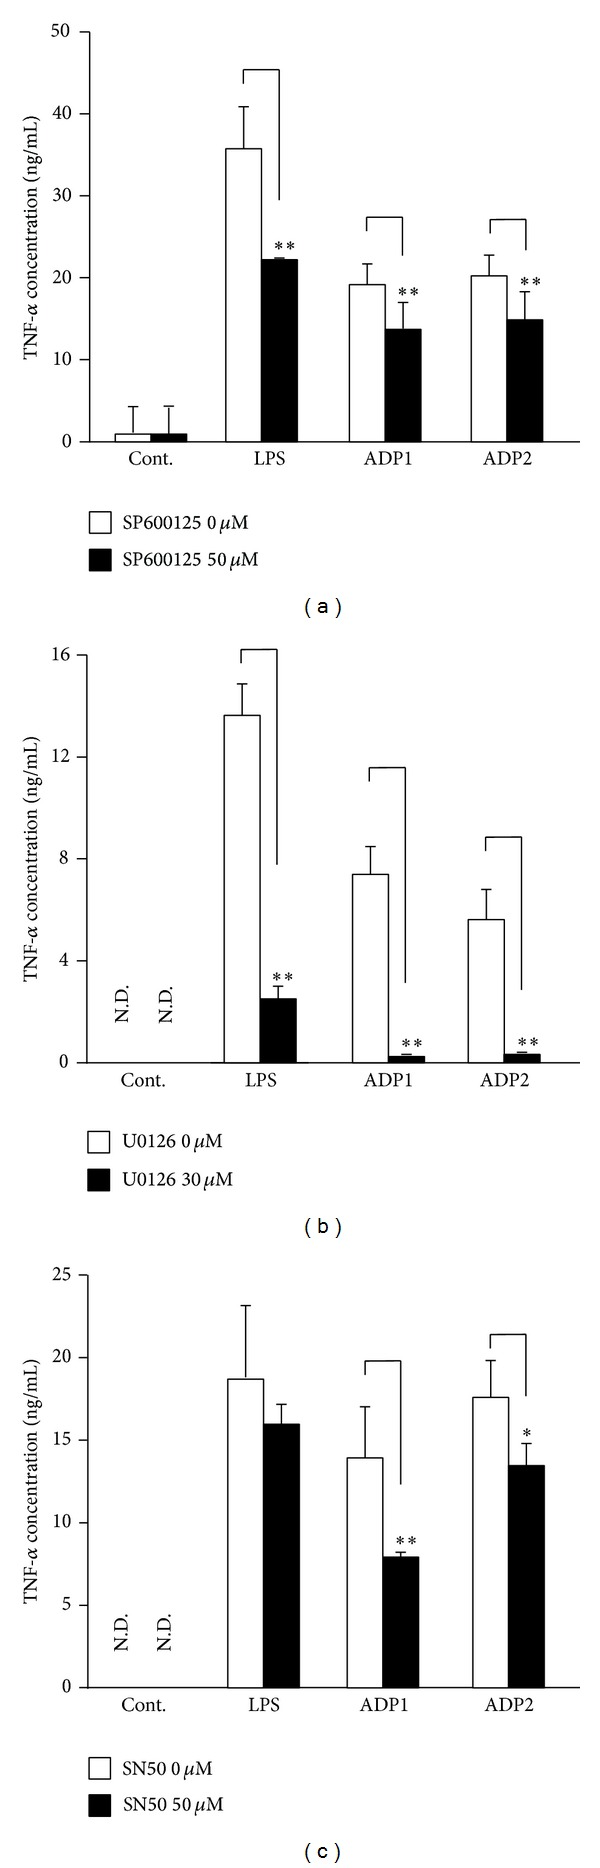 Asian dust particles-induced tumor necrosis factor- α (TNF- α ) production is dependent on mitogen-activated protein kinase and nuclear factor- κ B signaling pathways. RAW264.7 cells were pretreated for 30 min with (a) 50 μ M of SP600125, an inhibitor of c-Jun N-terminal kinase; (b) 30 μ M of U0126, an extracellular signal-regulated kinase (ERK) inhibitor; or (c) 50 μ M of SN50, a nuclear factor- κ B (NF- κ B) inhibitor and then treated for 6 h with 100 μ g/mL of ADP1 or ADP2 or 1.5 μ g/mL of LPS. Dimethyl sulfoxide (0.1%) vehicle was used as control (Cont.). The level of TNF- α in the culture supernatants was assessed by means of an enzyme-linked immunosorbent assay. Results are expressed as mean ± SD; n = 6; * P